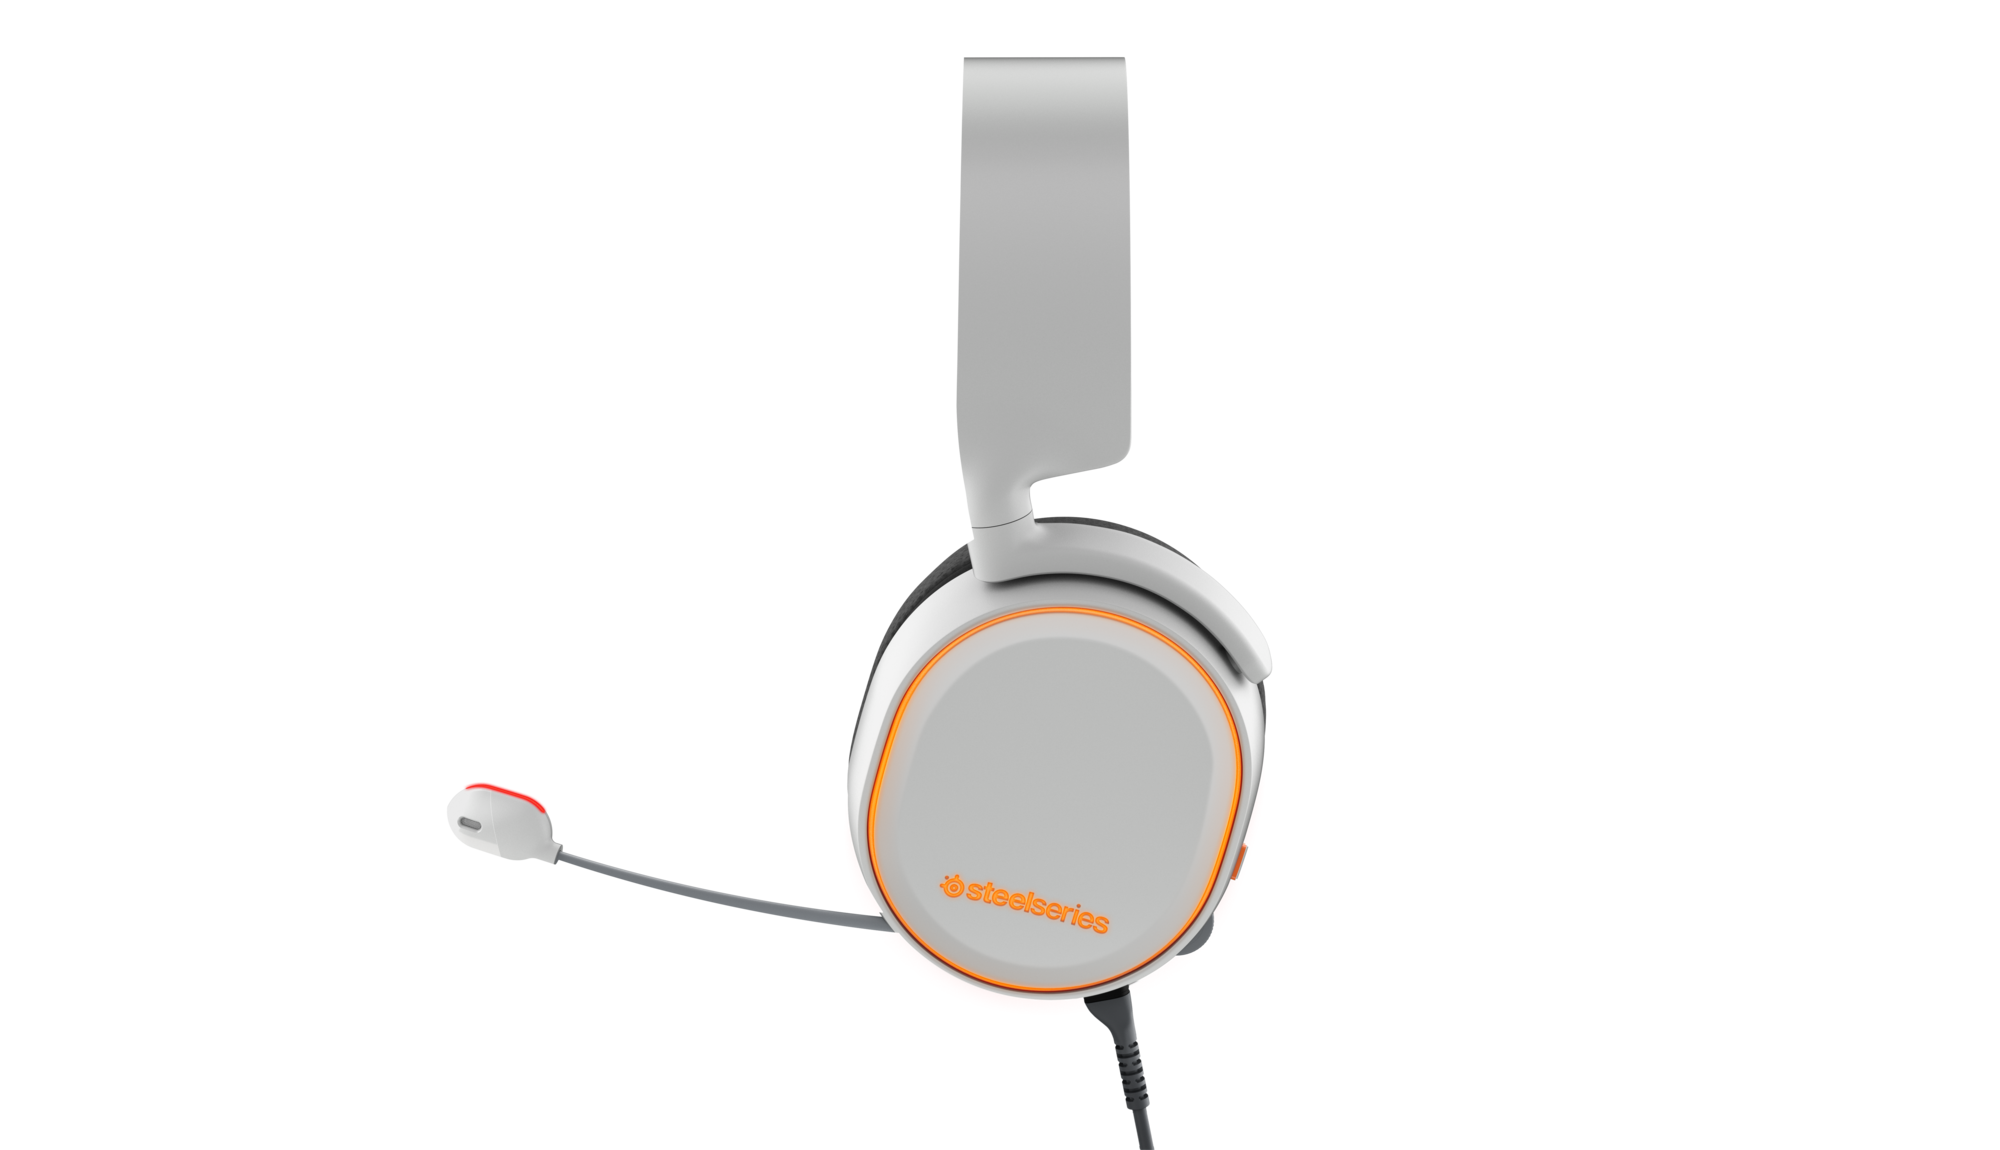 SteelSeries Arctic 5 White Edition